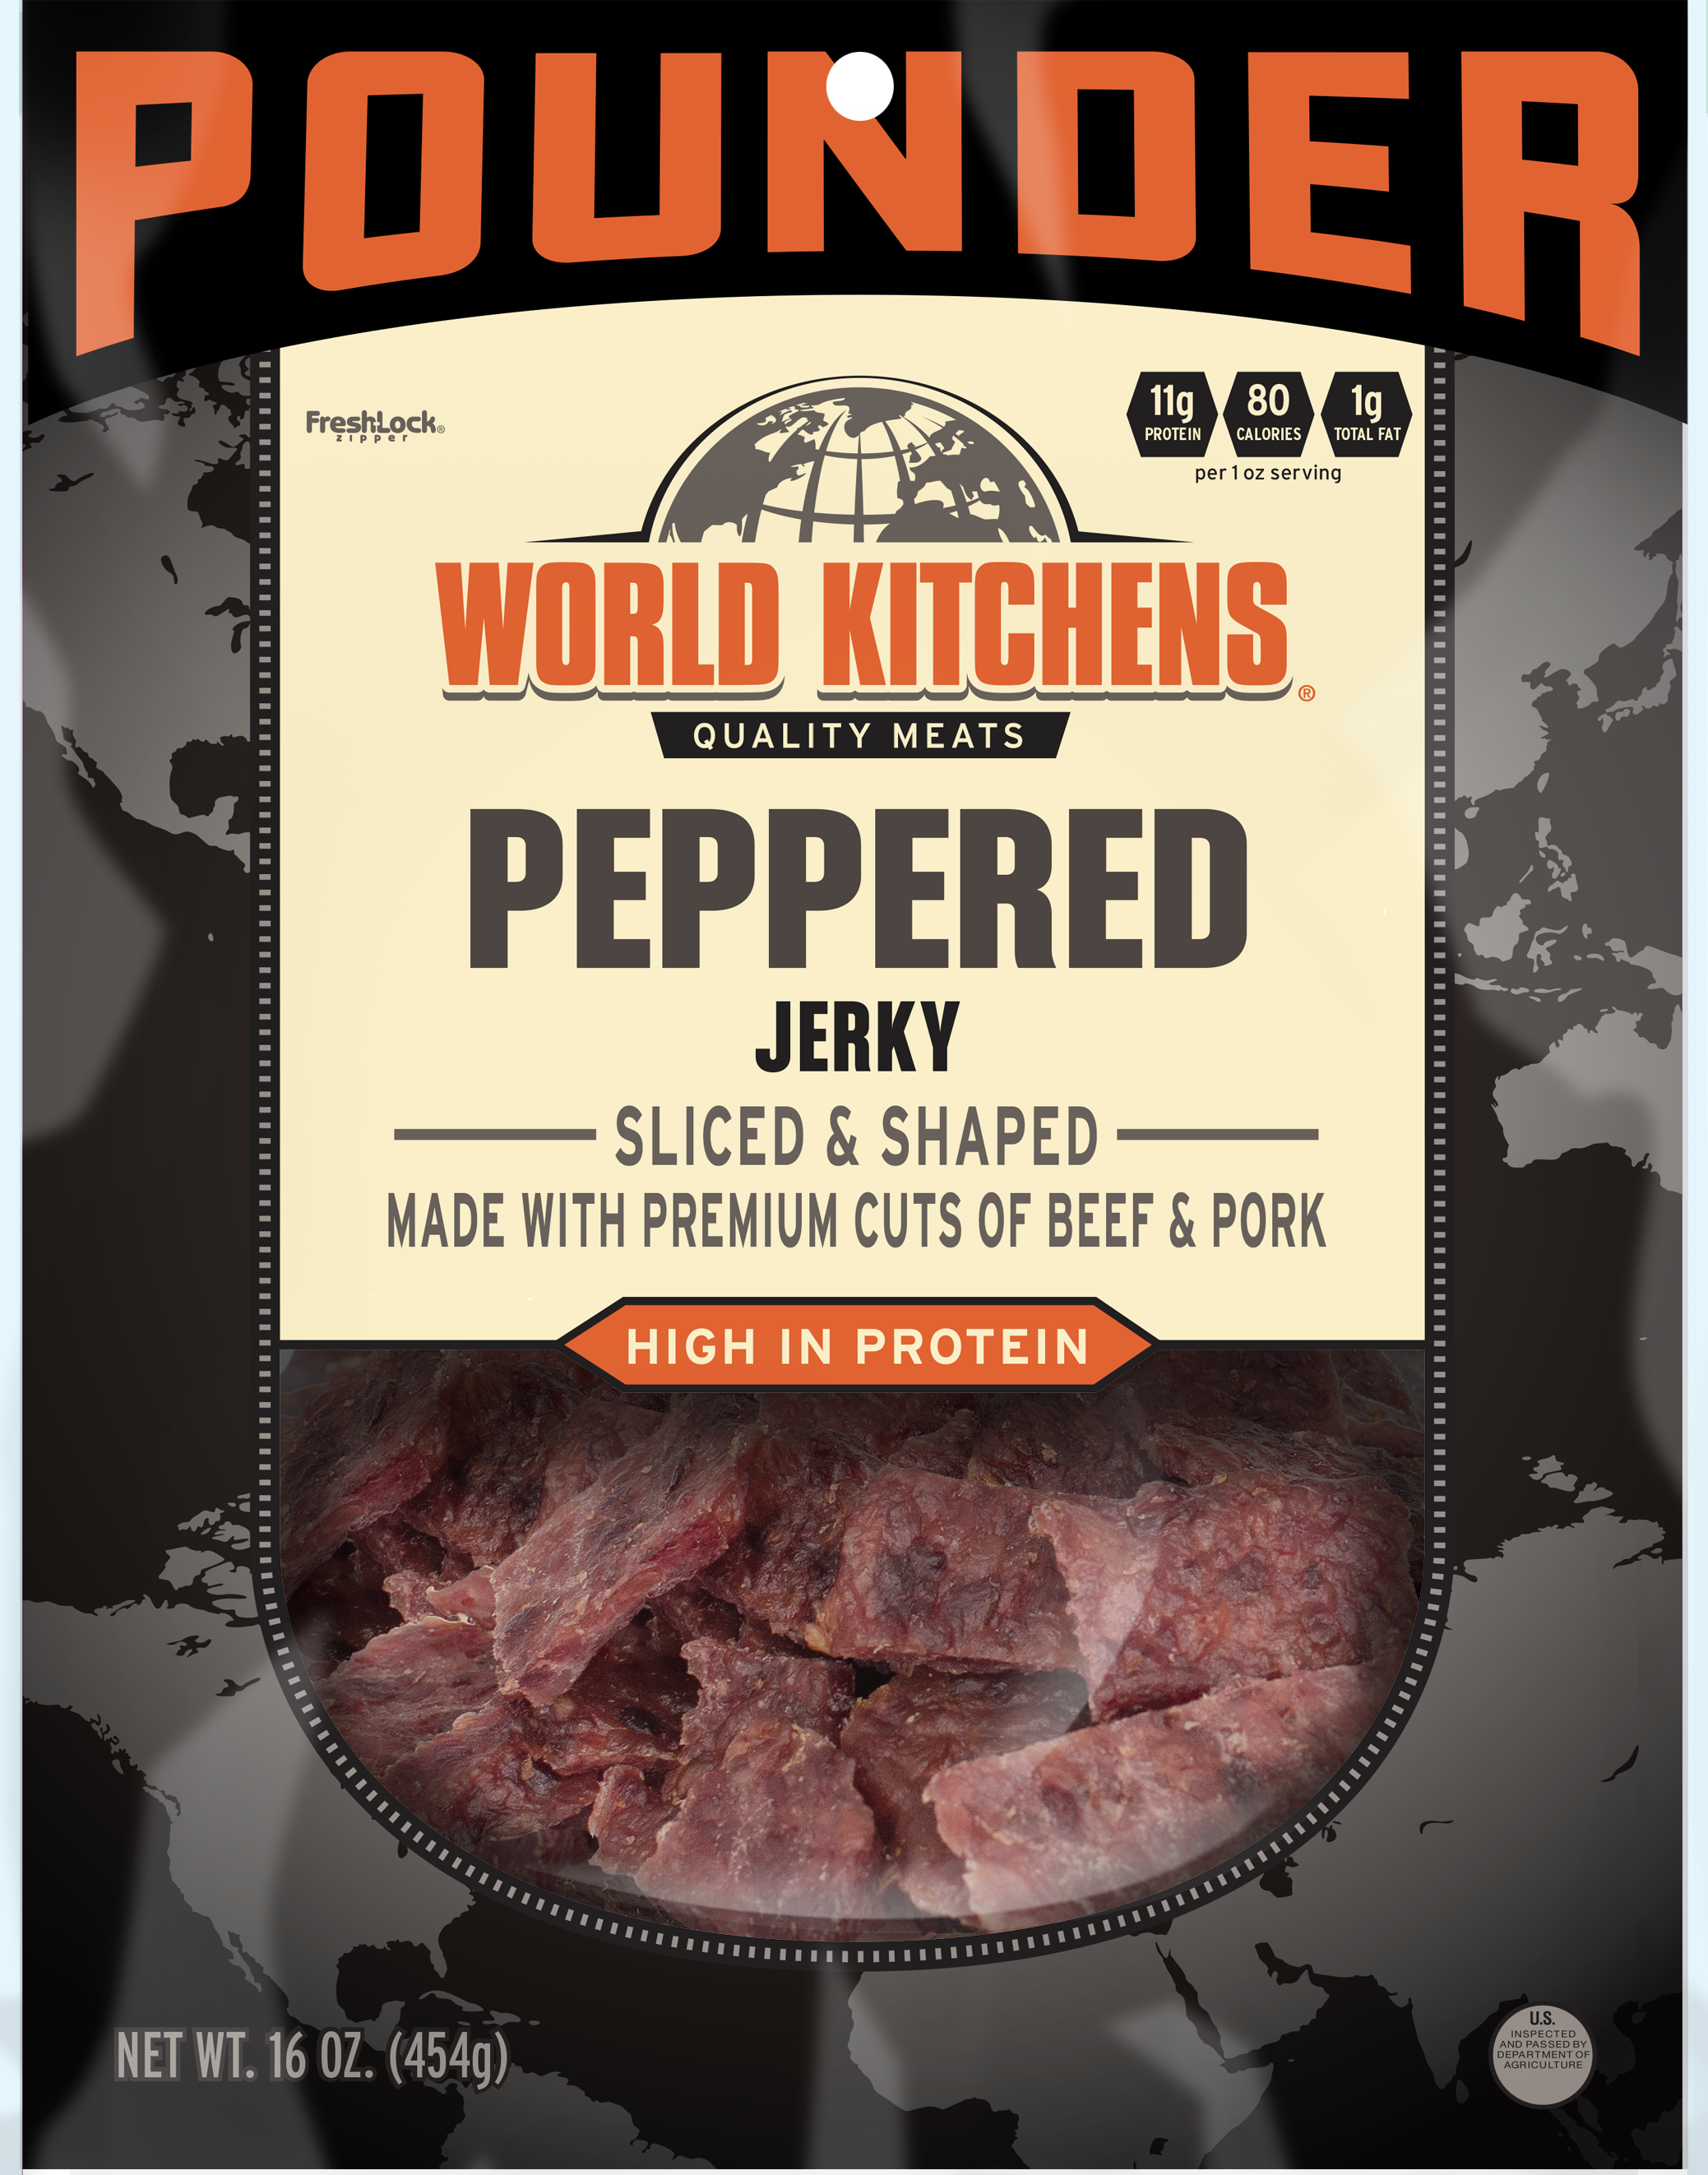 World Kitchen's 16oz Peppered Jerky